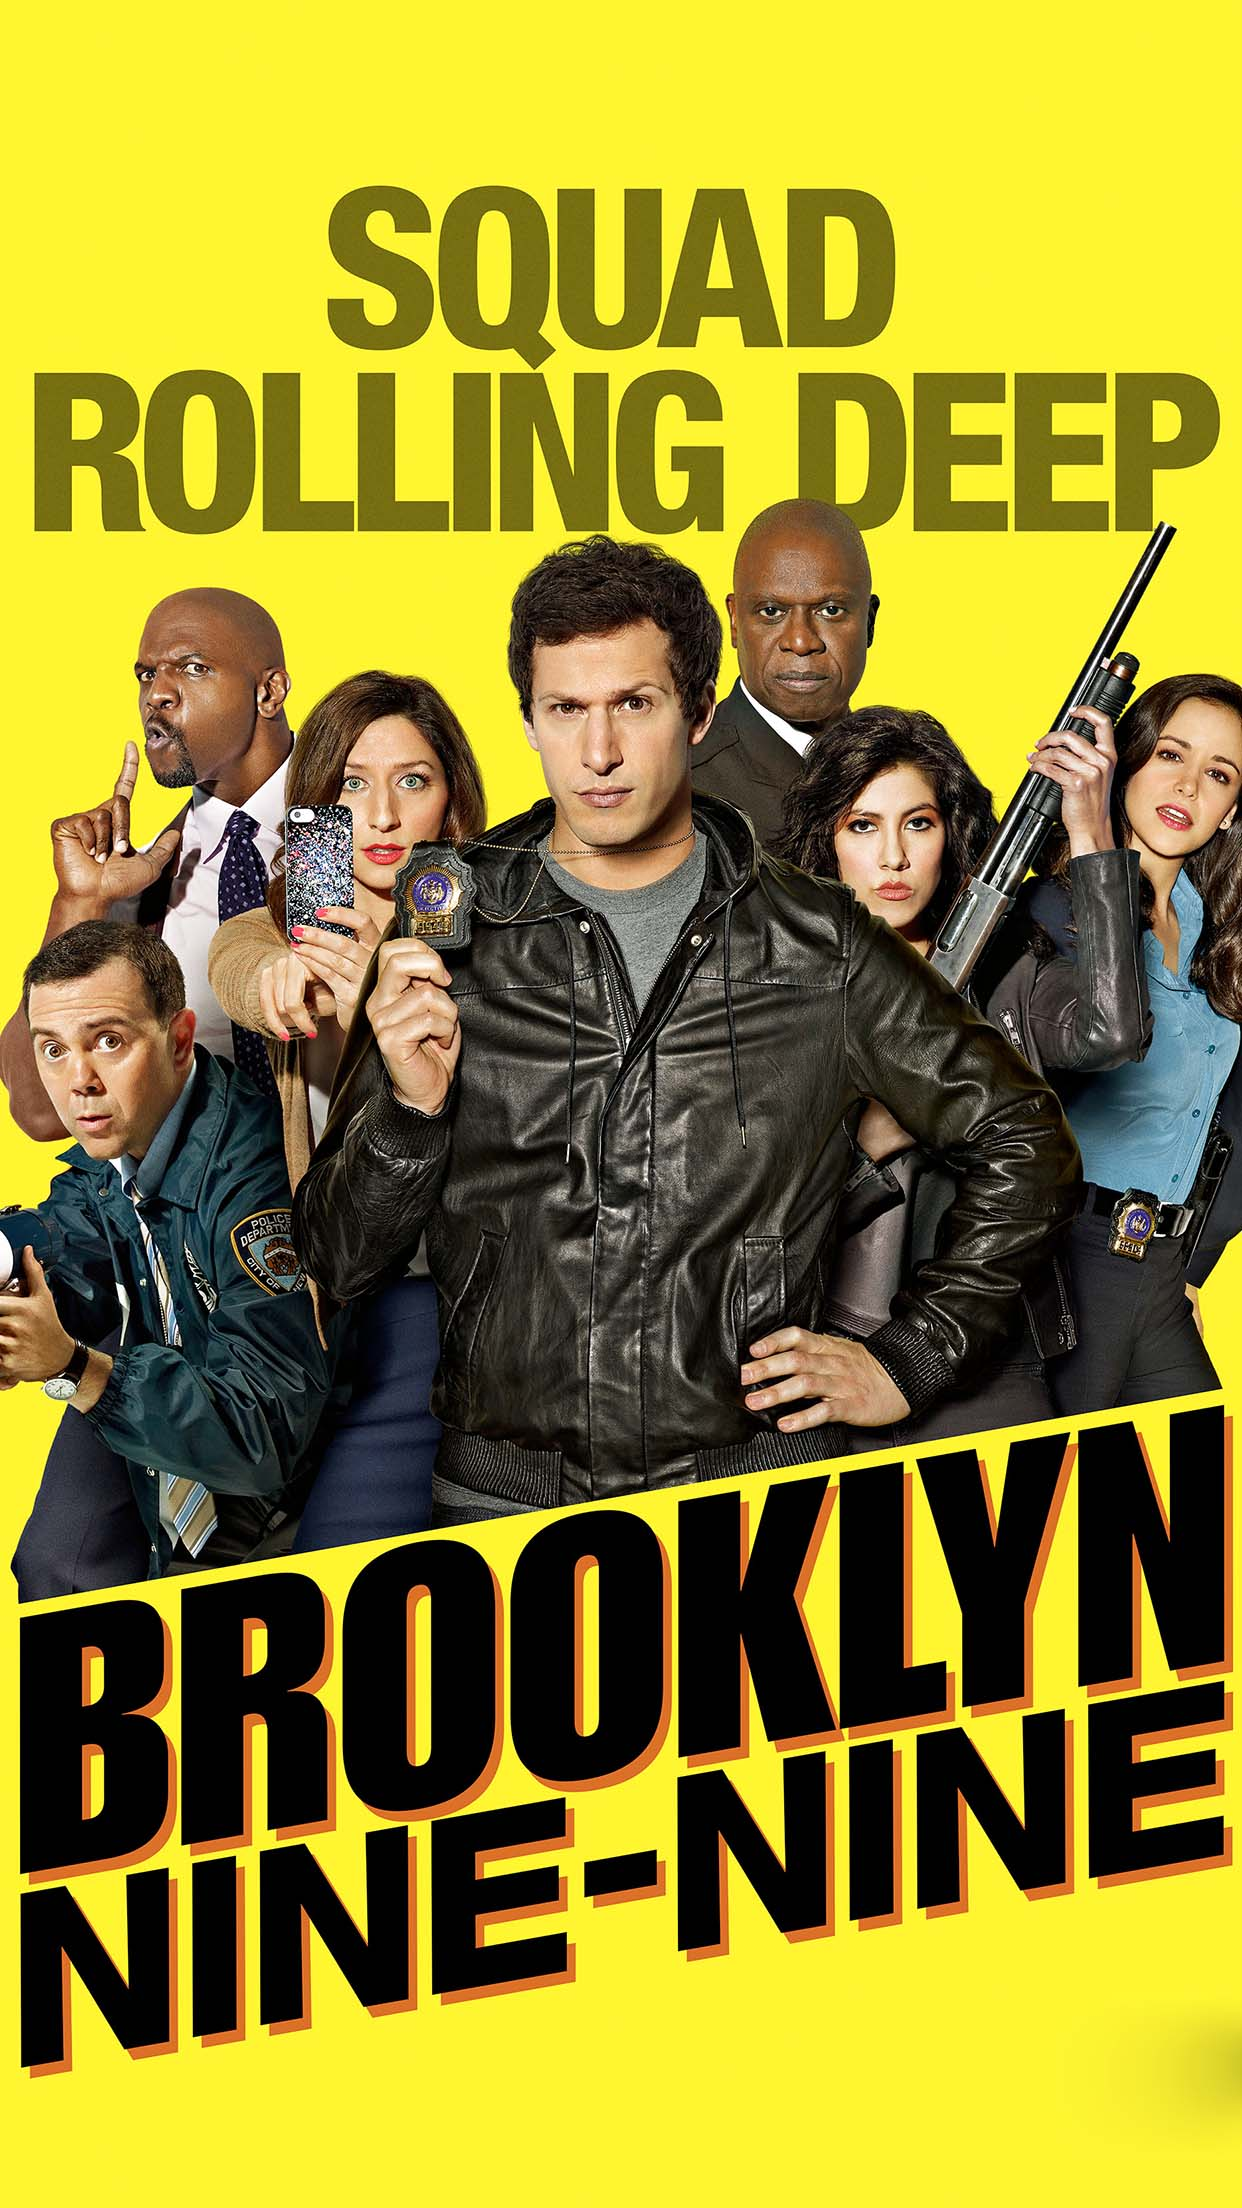 Brooklyn Nine Nine Team 3Wallpapers iPhone Parallax 3Wallpapers : notre sélection de fonds d'écran du 01/12/2016